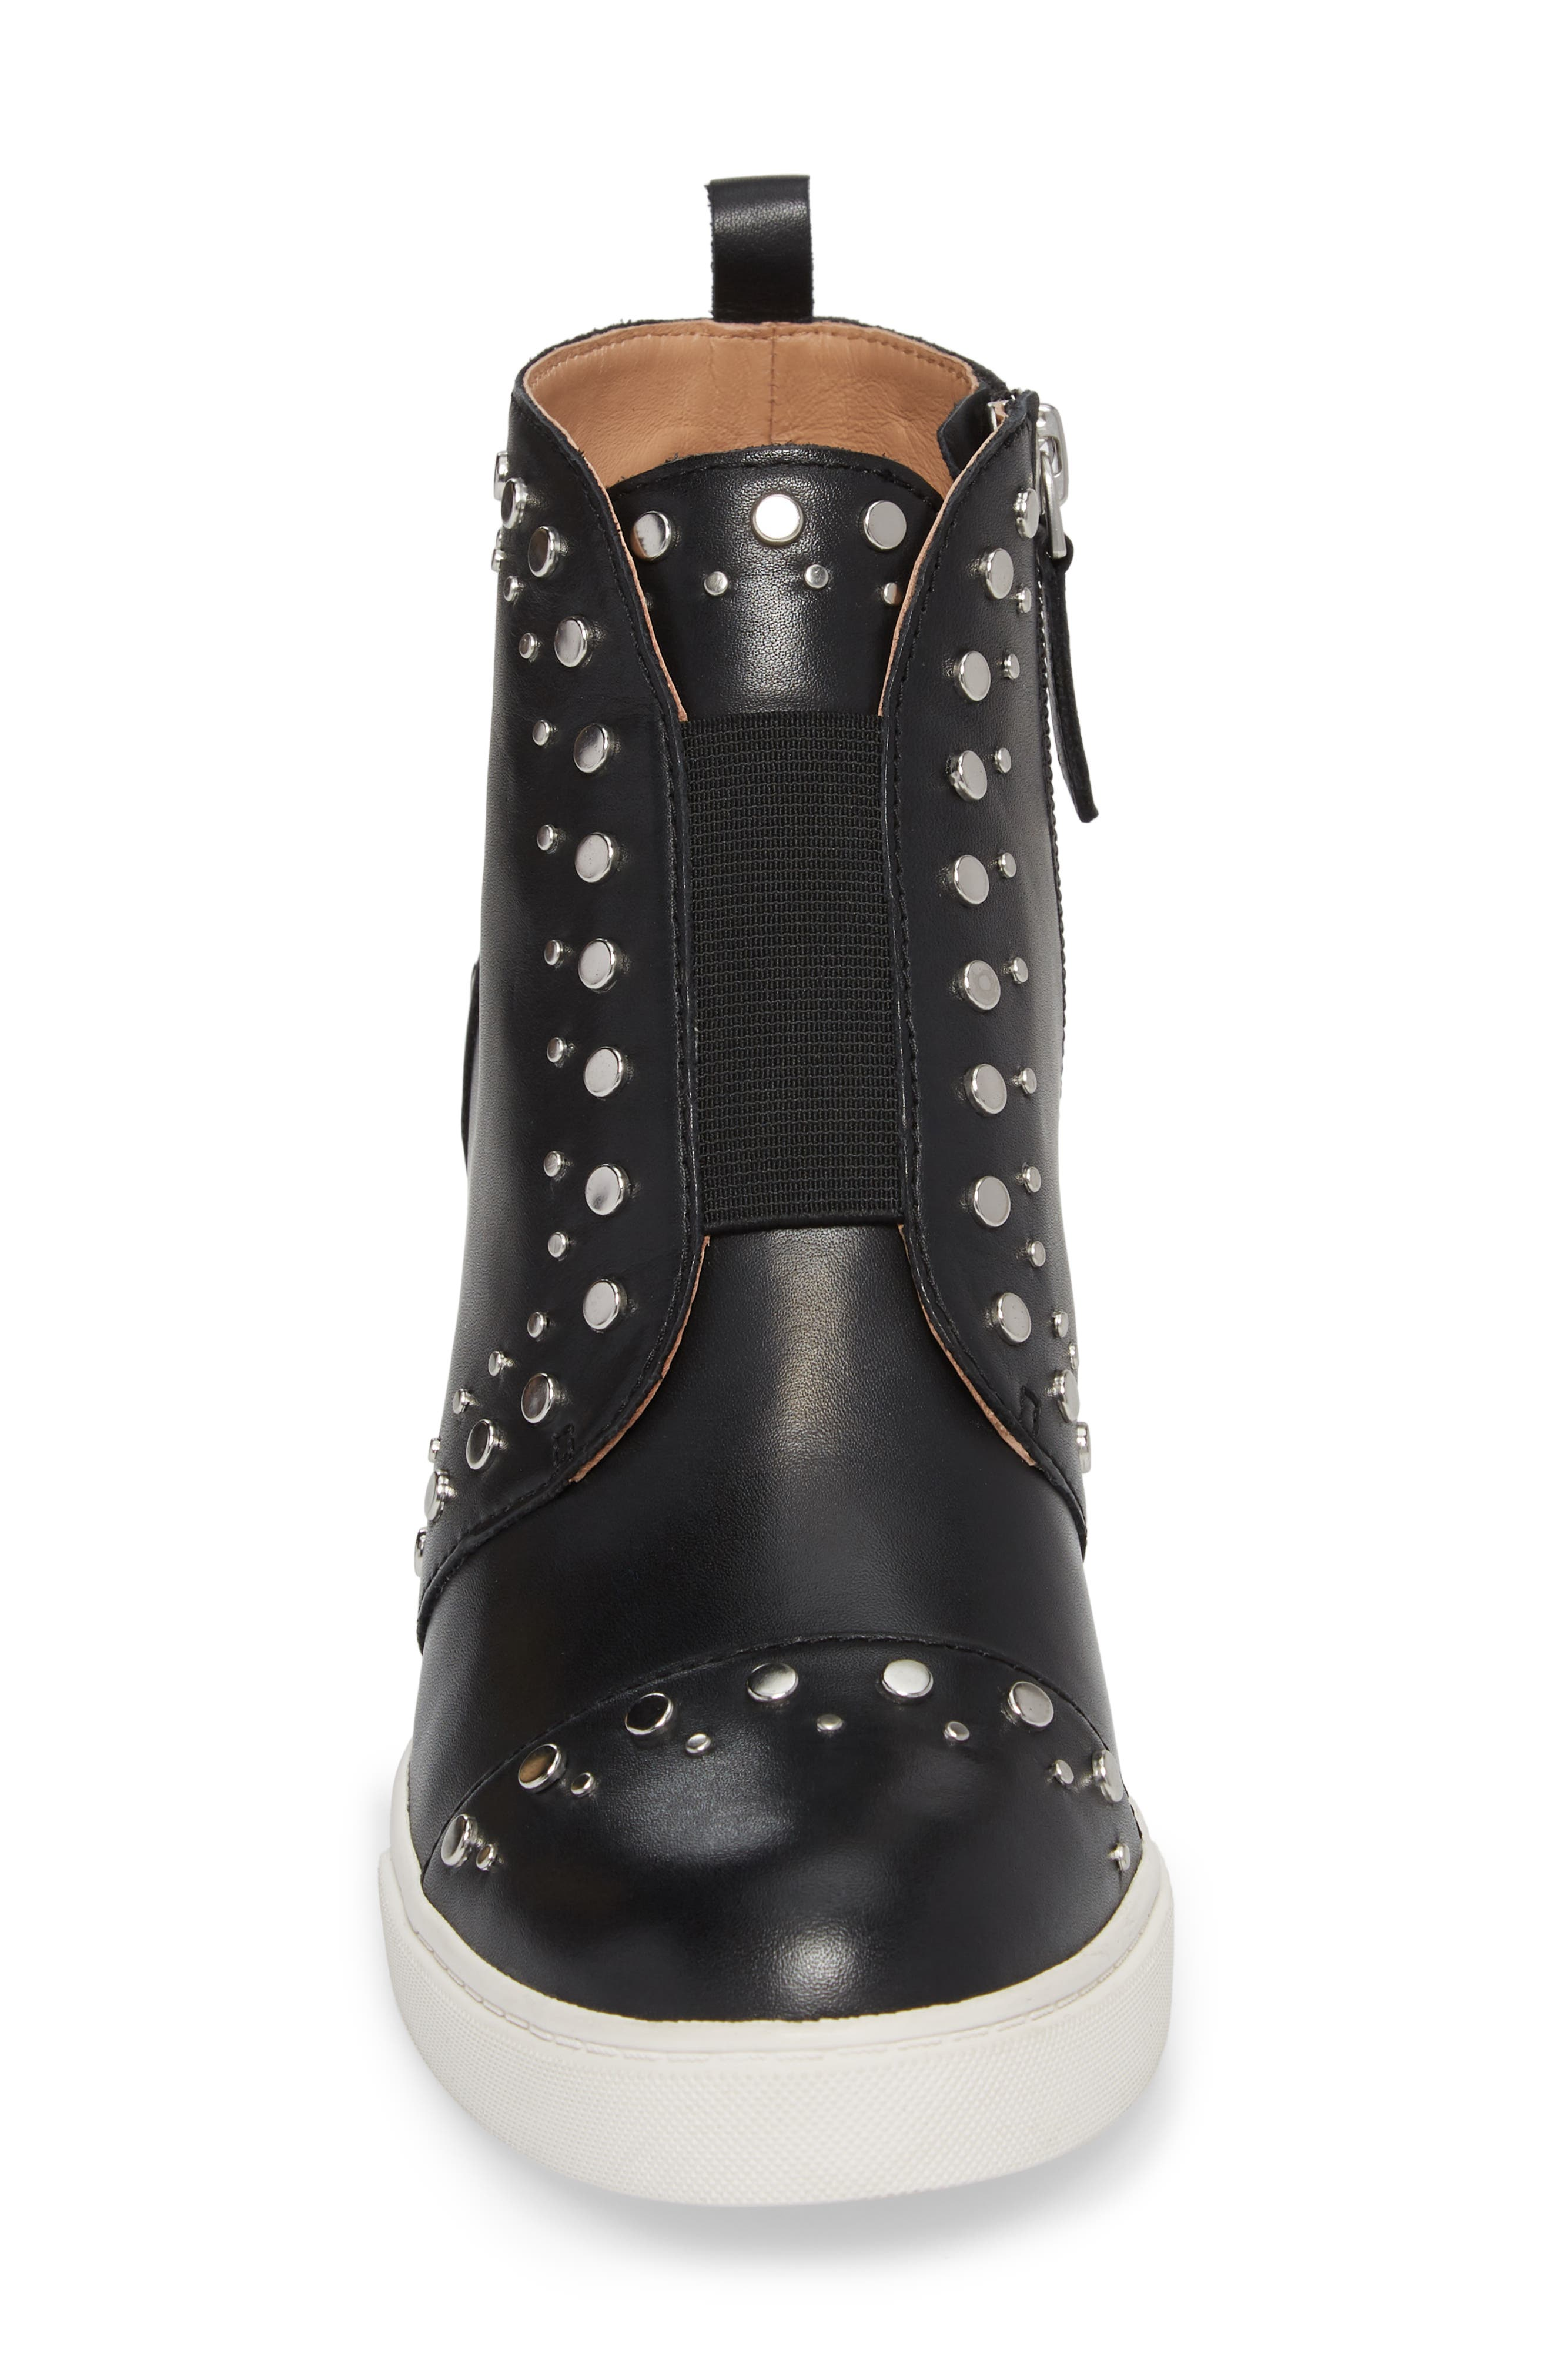 LINEA PAOLO, Felicity Wedge Sneaker, Alternate thumbnail 4, color, BLACK LEATHER